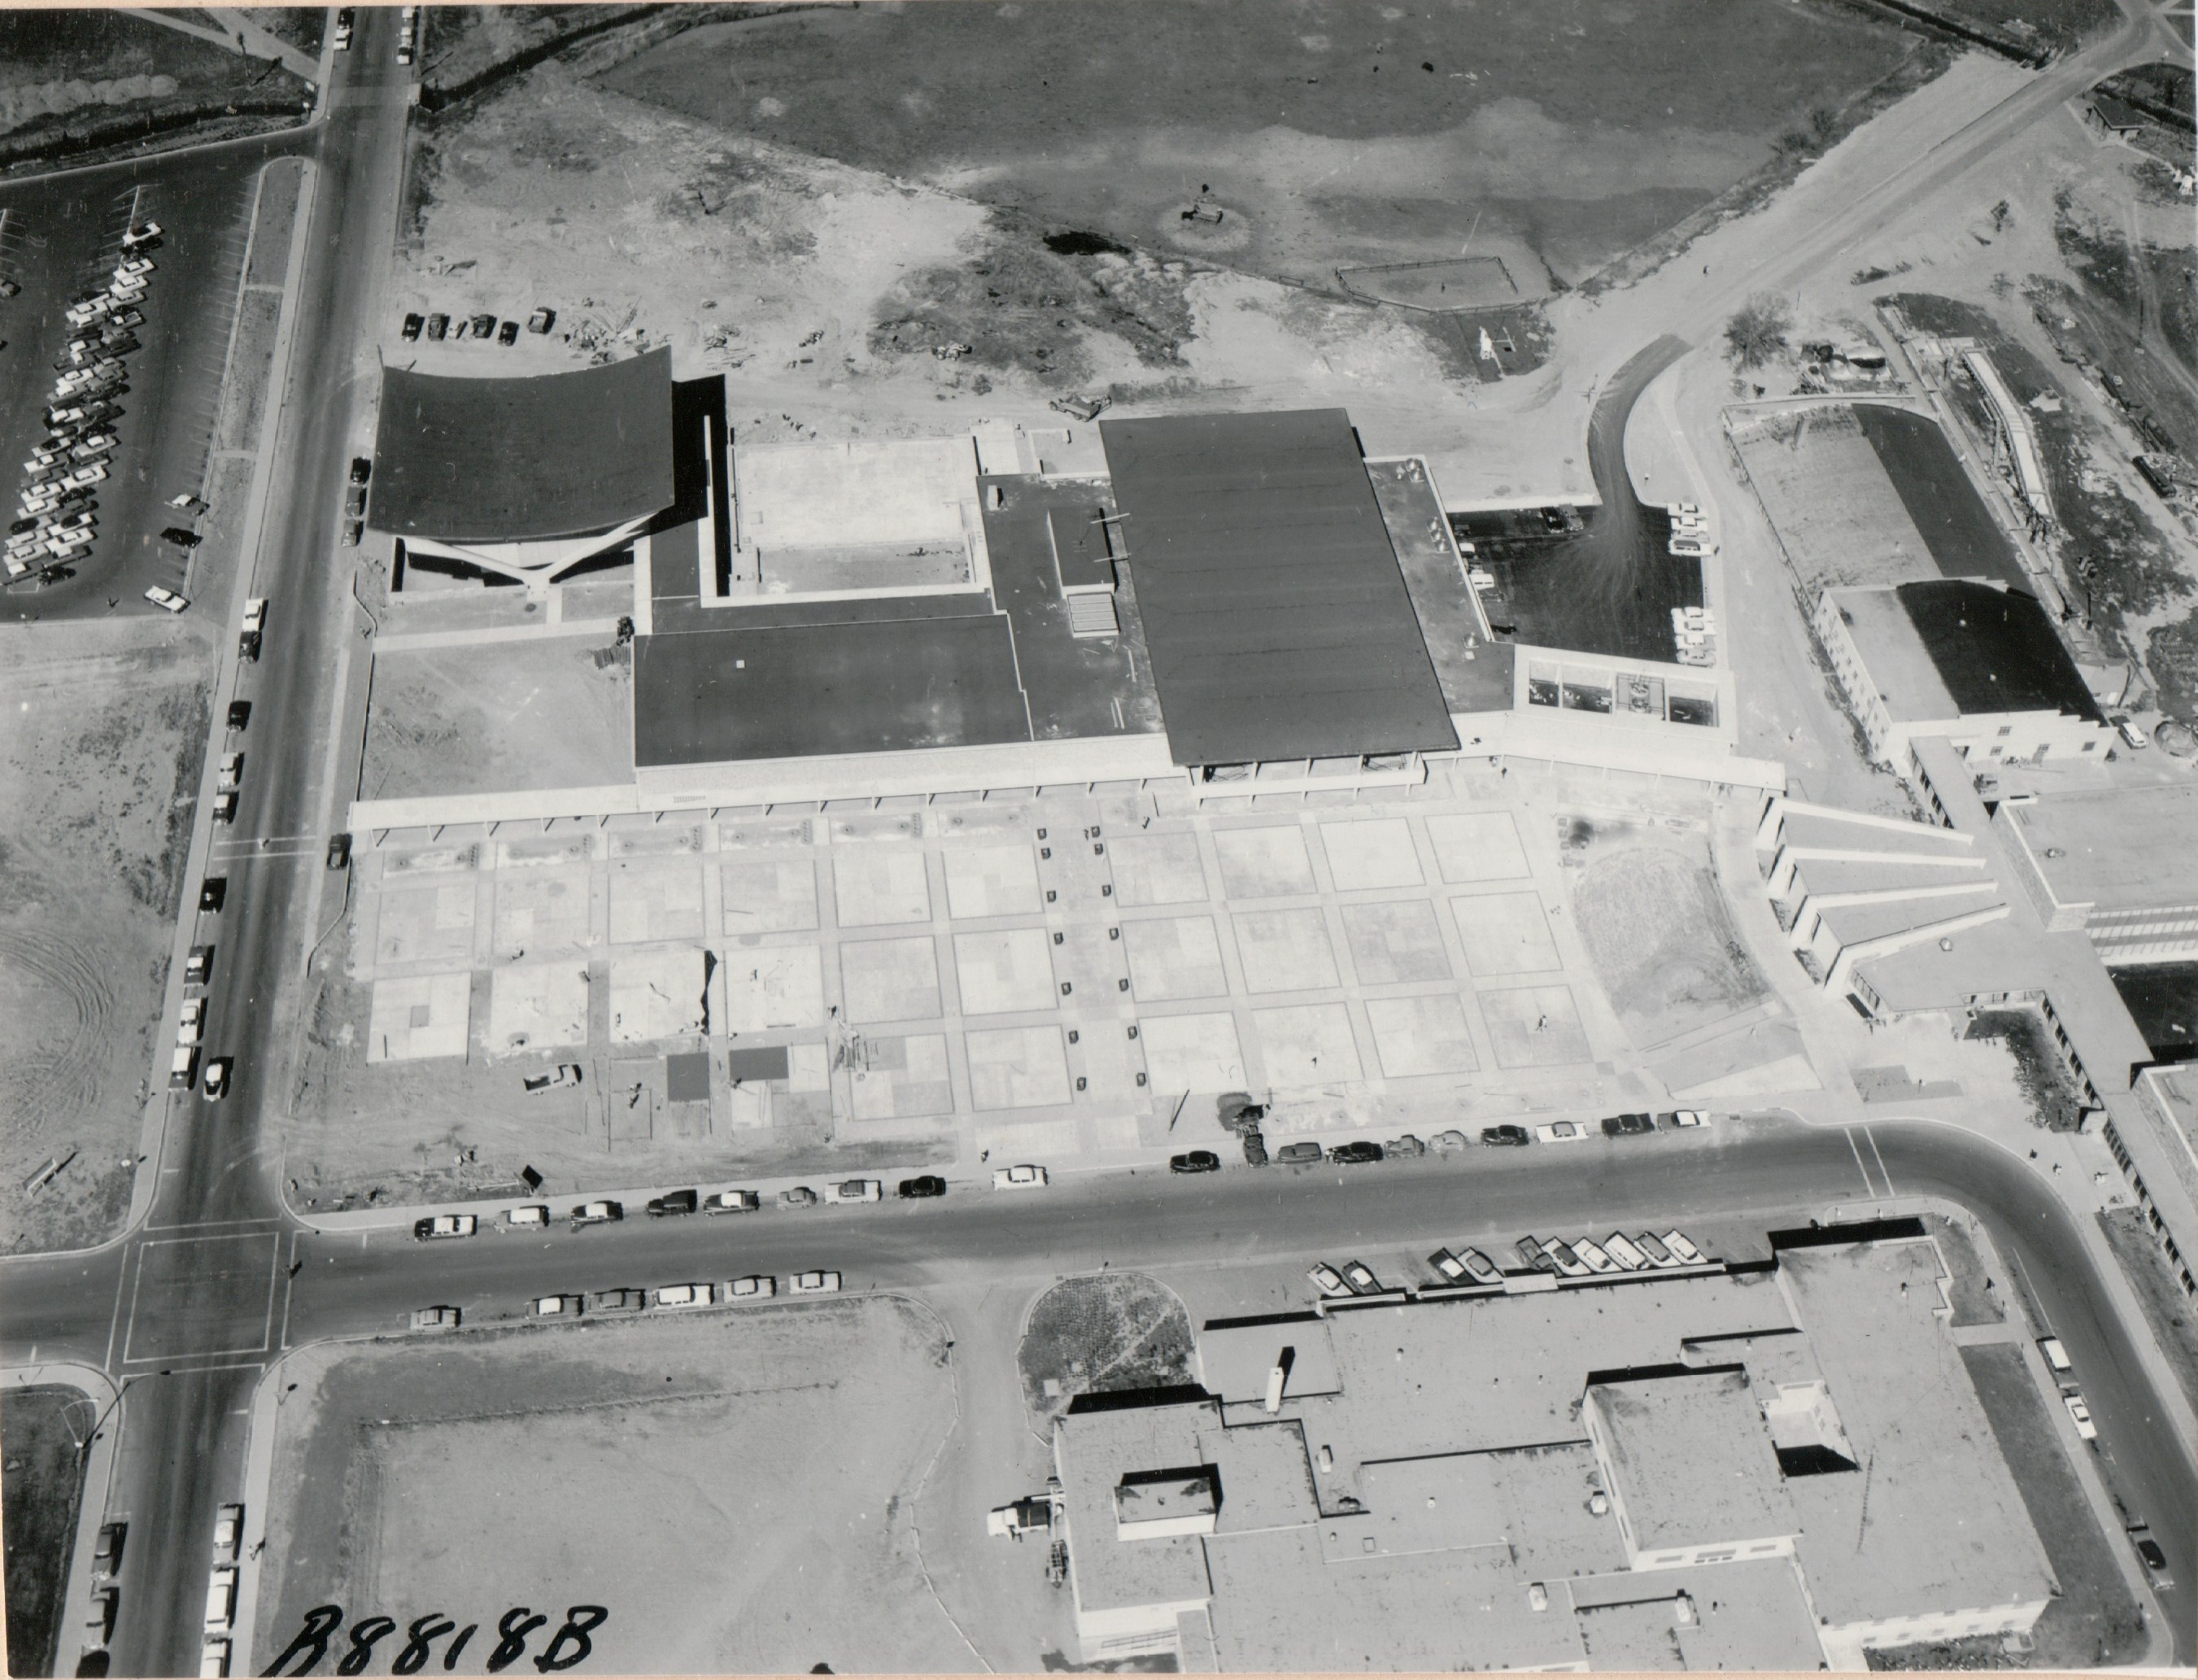 Then & Now: the Plaza at Colorado State University in 1962